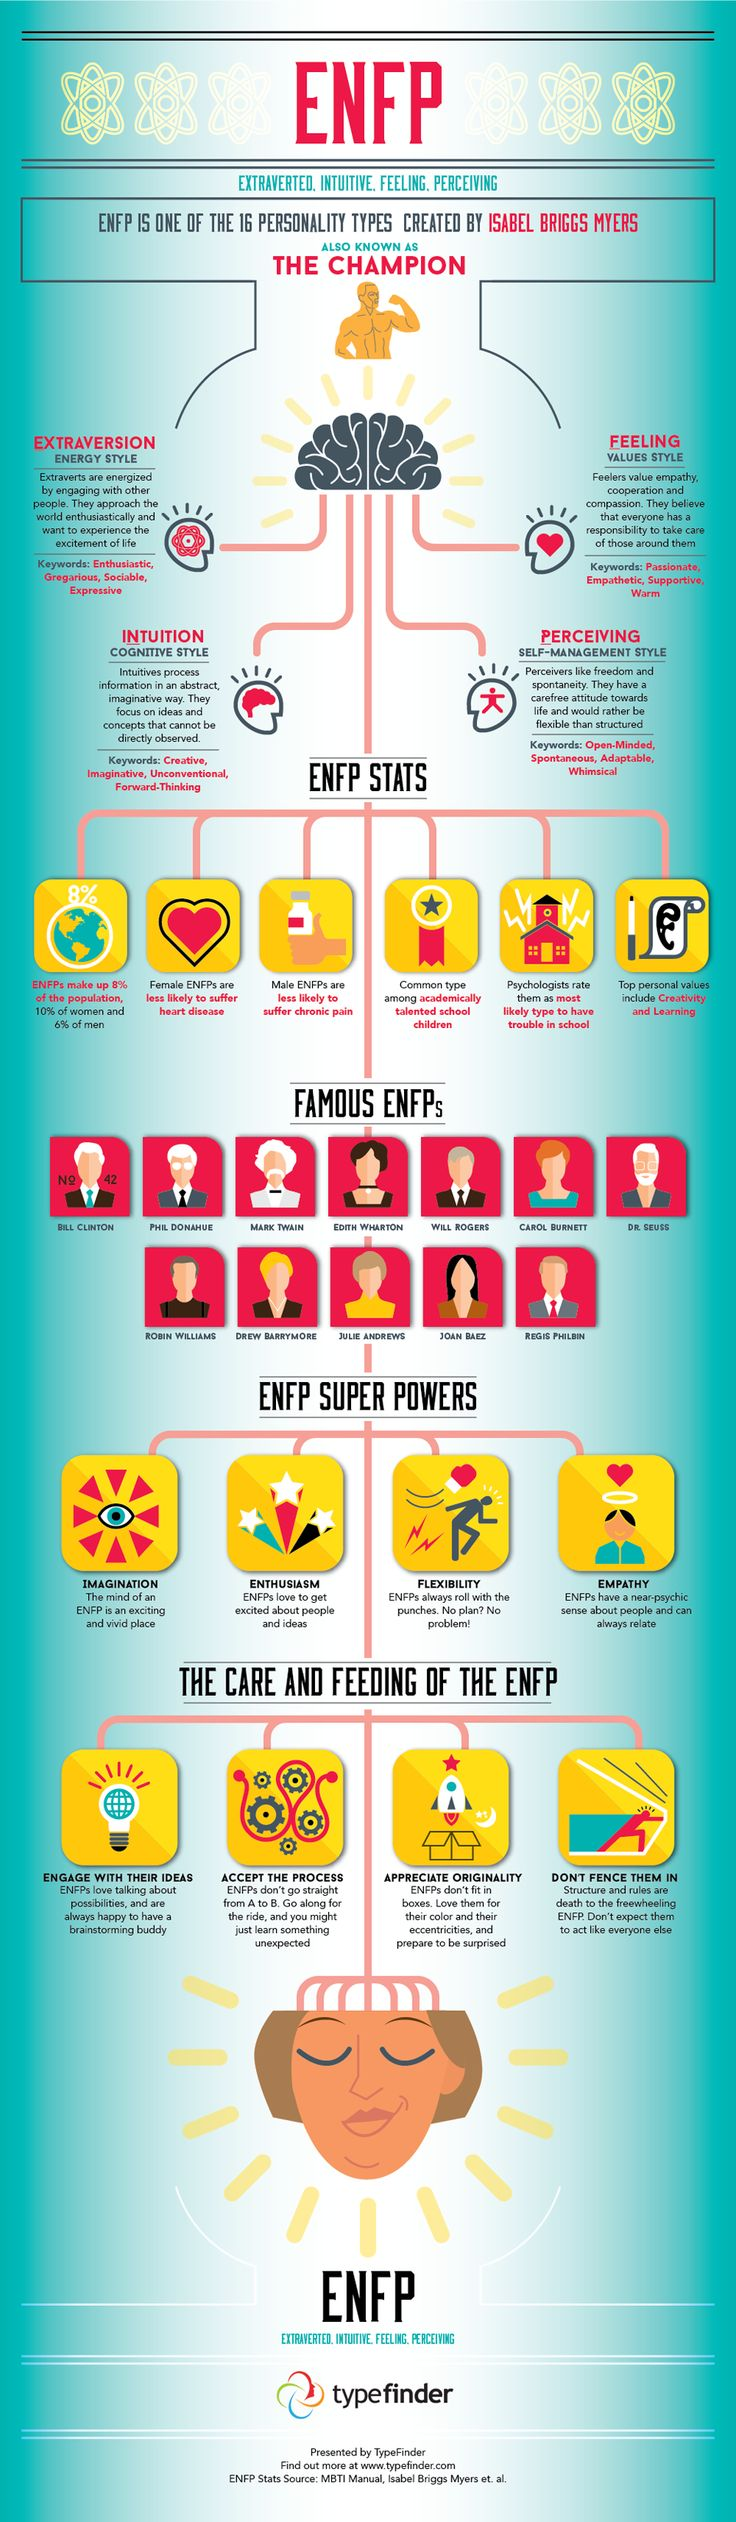 ENFP Infographic - Facts and Stats about the ENFP personality type